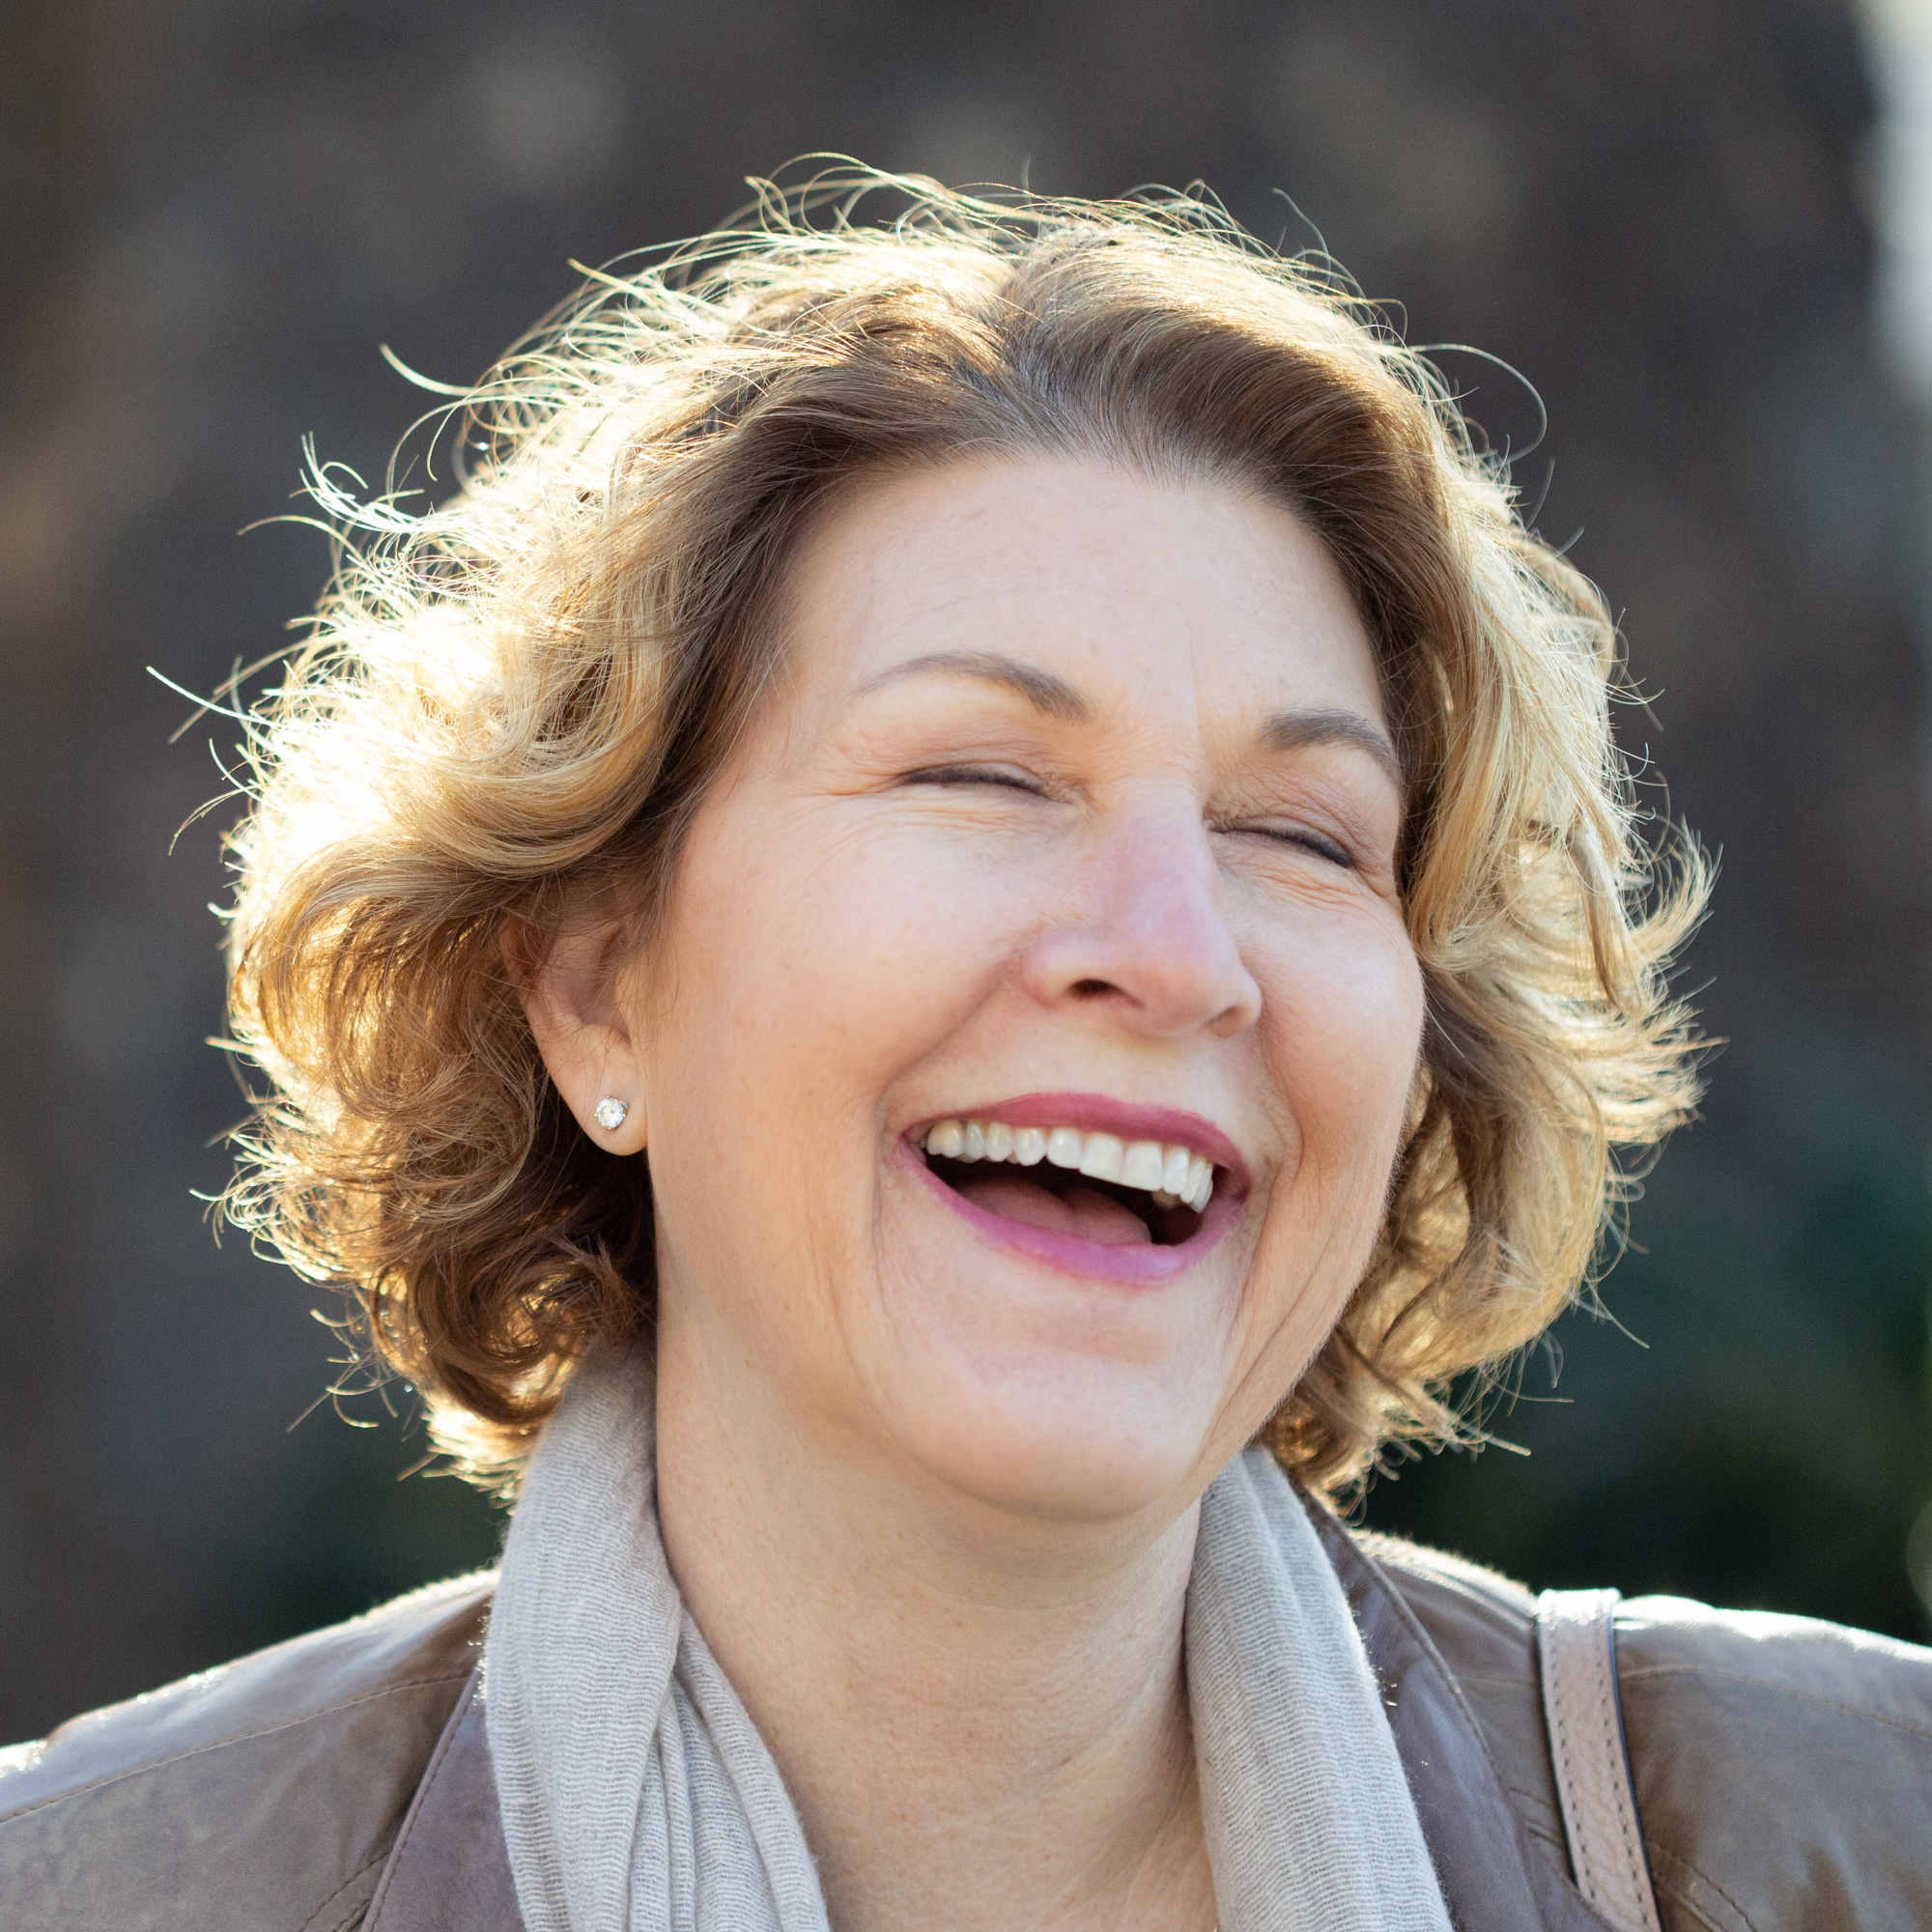 Sharon Eucce laughing during her personal branding shoot in San Diego